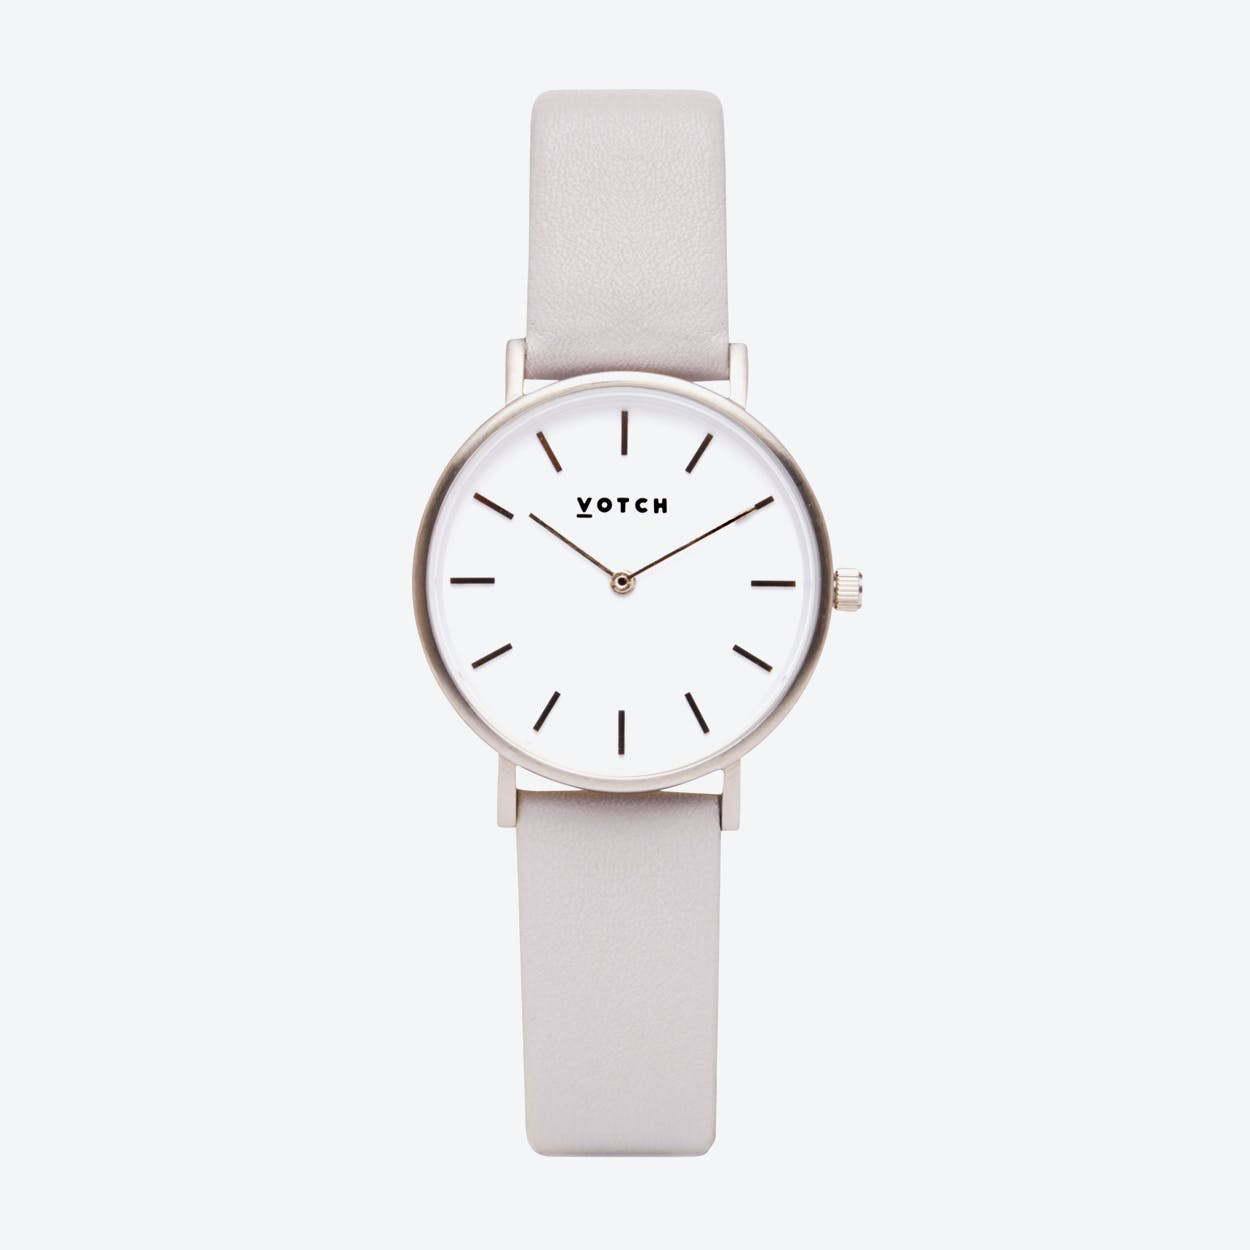 Classic Watch in Silver with White Face and Light Grey Vegan Leather Strap, 33mm